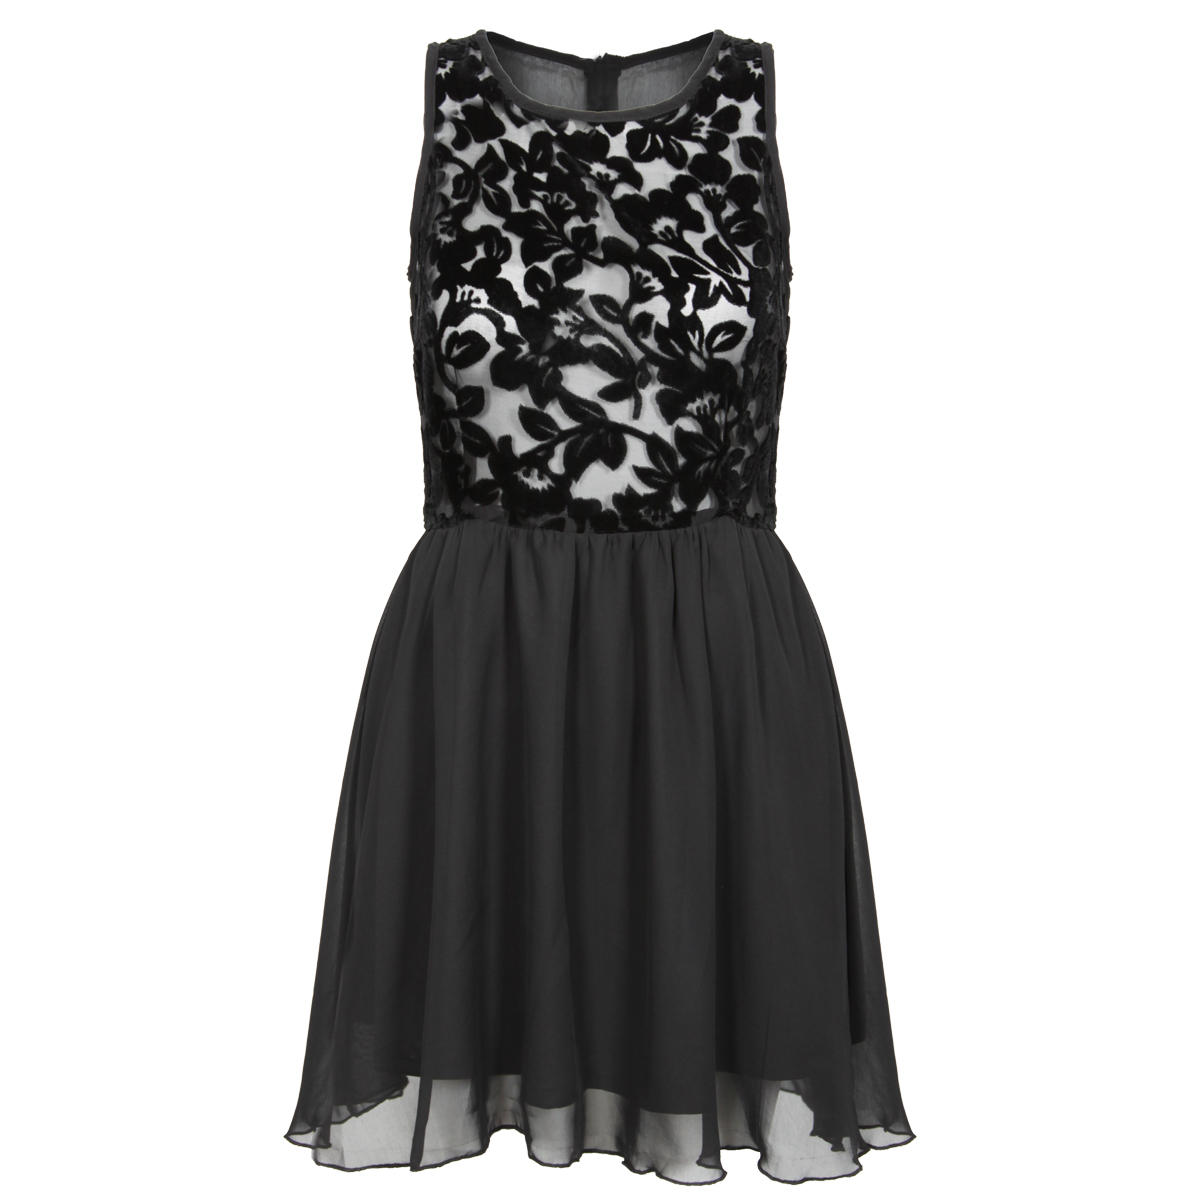 Black Floral Print Mesh Dress Preview